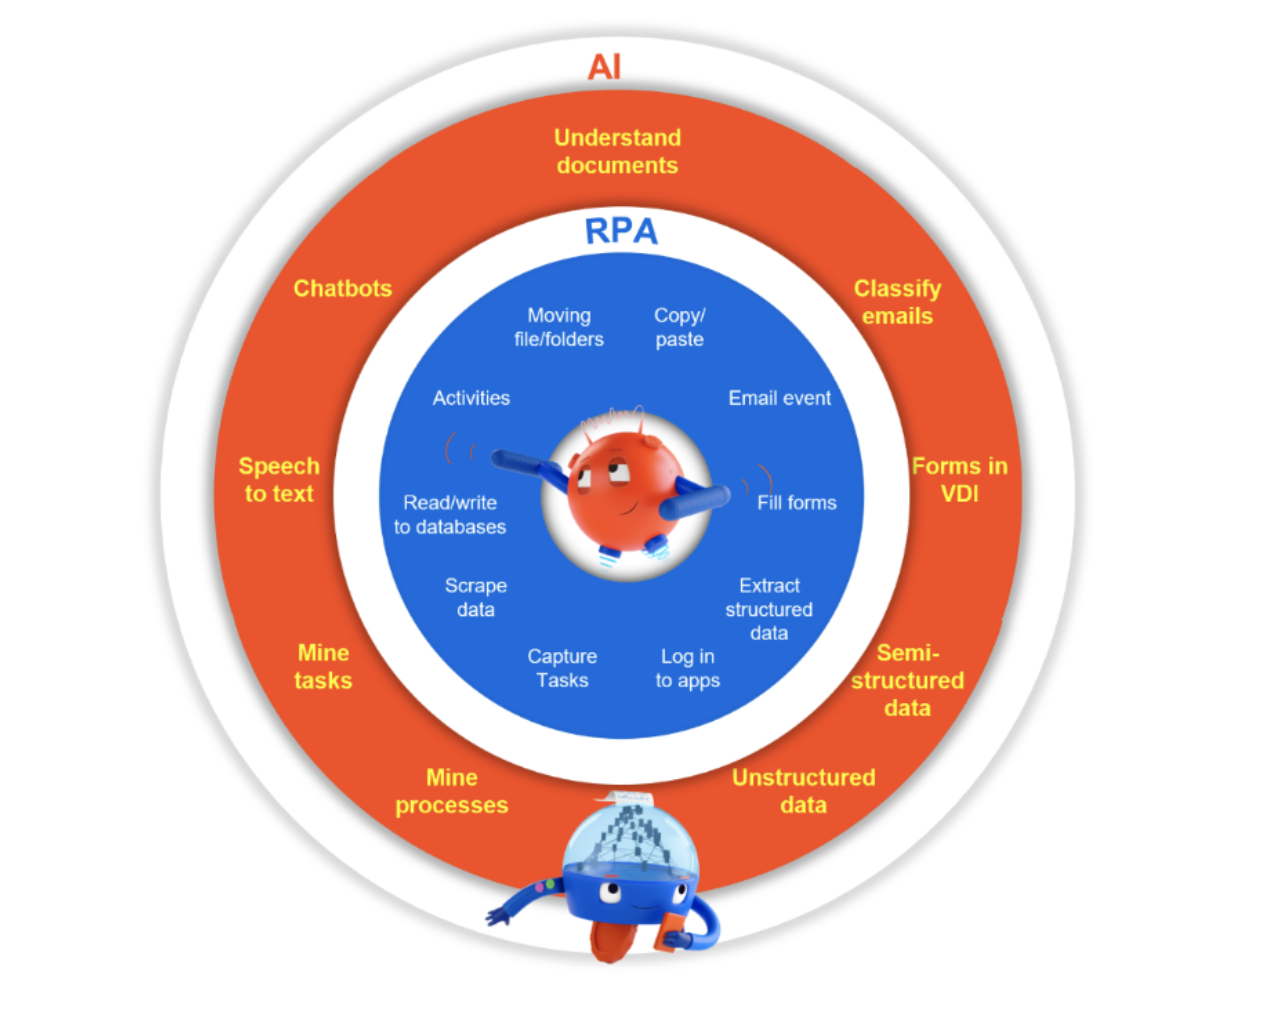 rpa-ai-differences